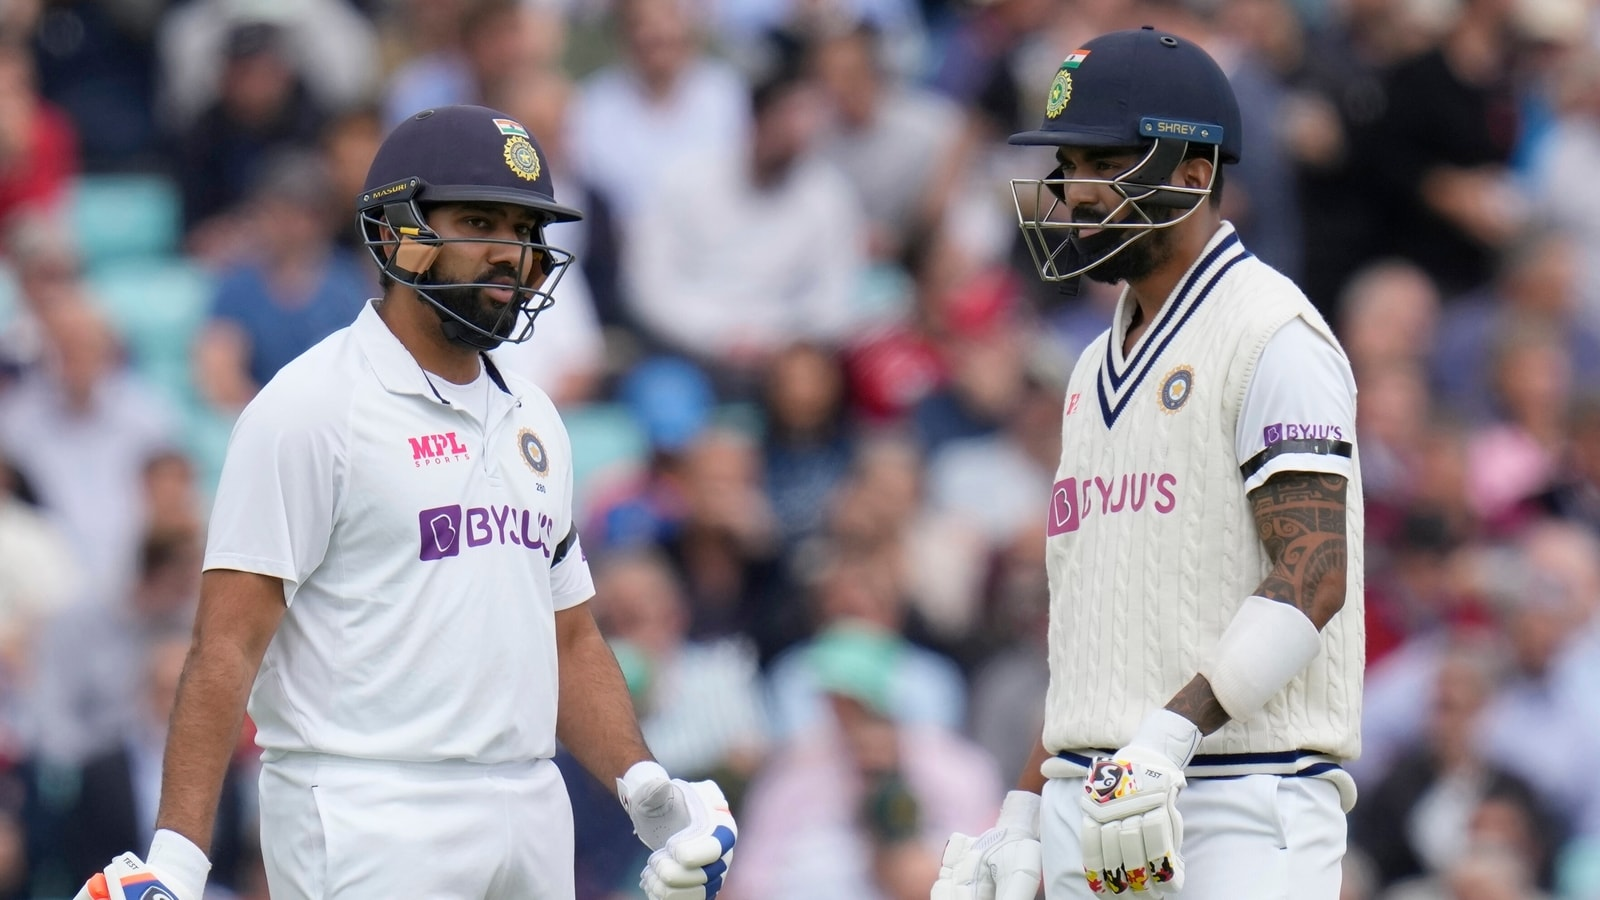 India vs England Highlights, 4th Test, Day 2: Rohit, Rahul safely take India to 43/0 at stumps, trail by 56 runs